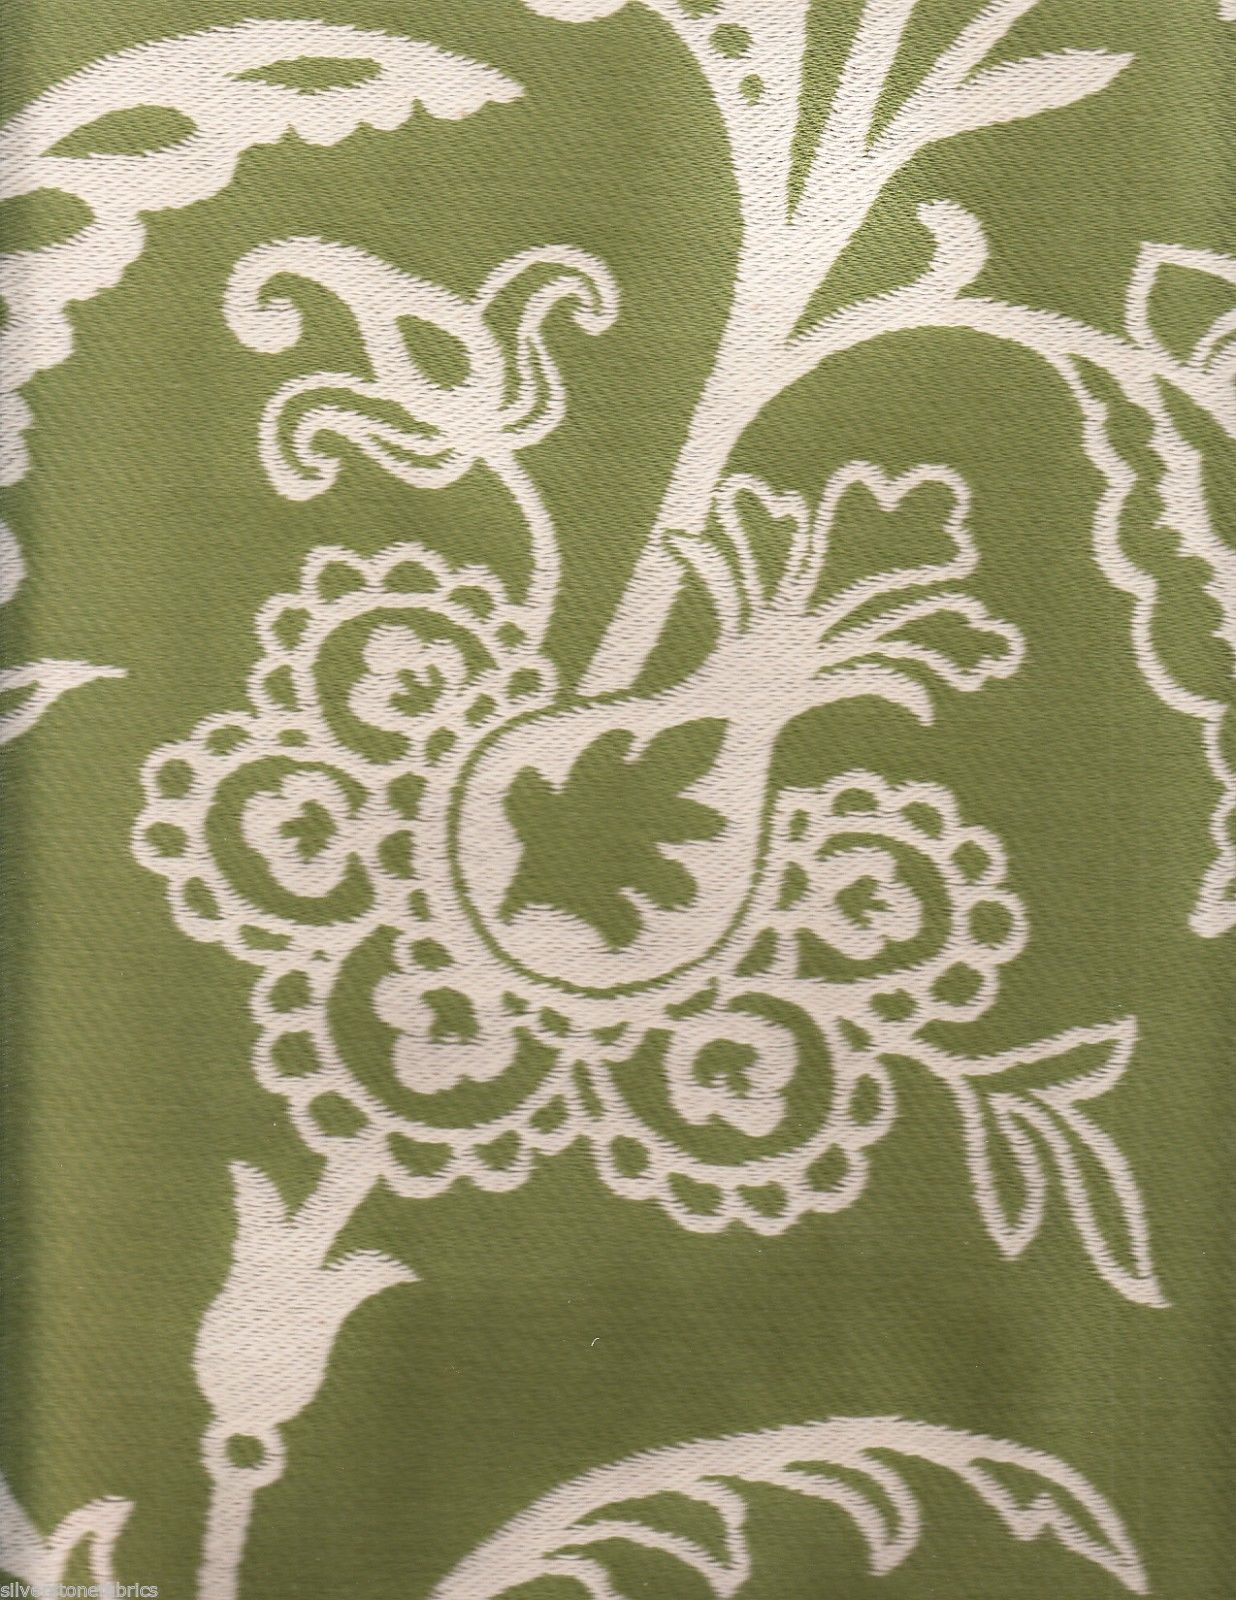 7.5 yds Highland Court Upholstery Fabric Cortland Large Floral Mint Green DL1